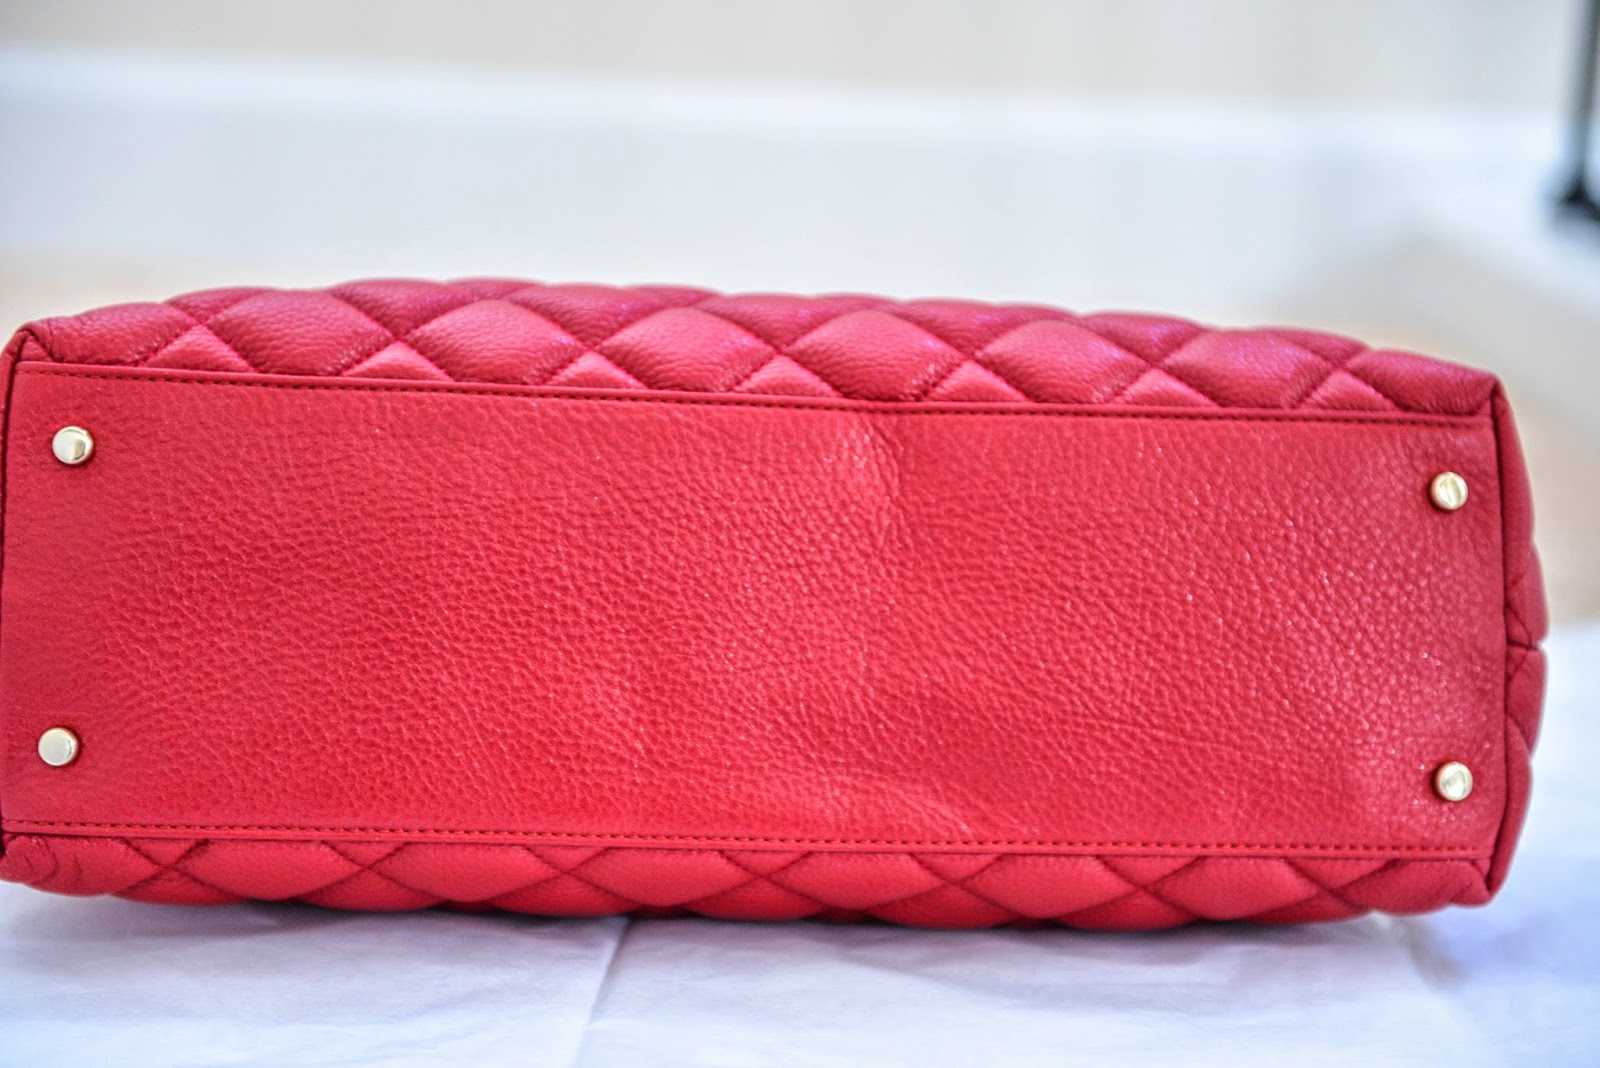 Paylessdesignerbags Katespade Small Rachelle Astor Court Navy Authentic Color Red